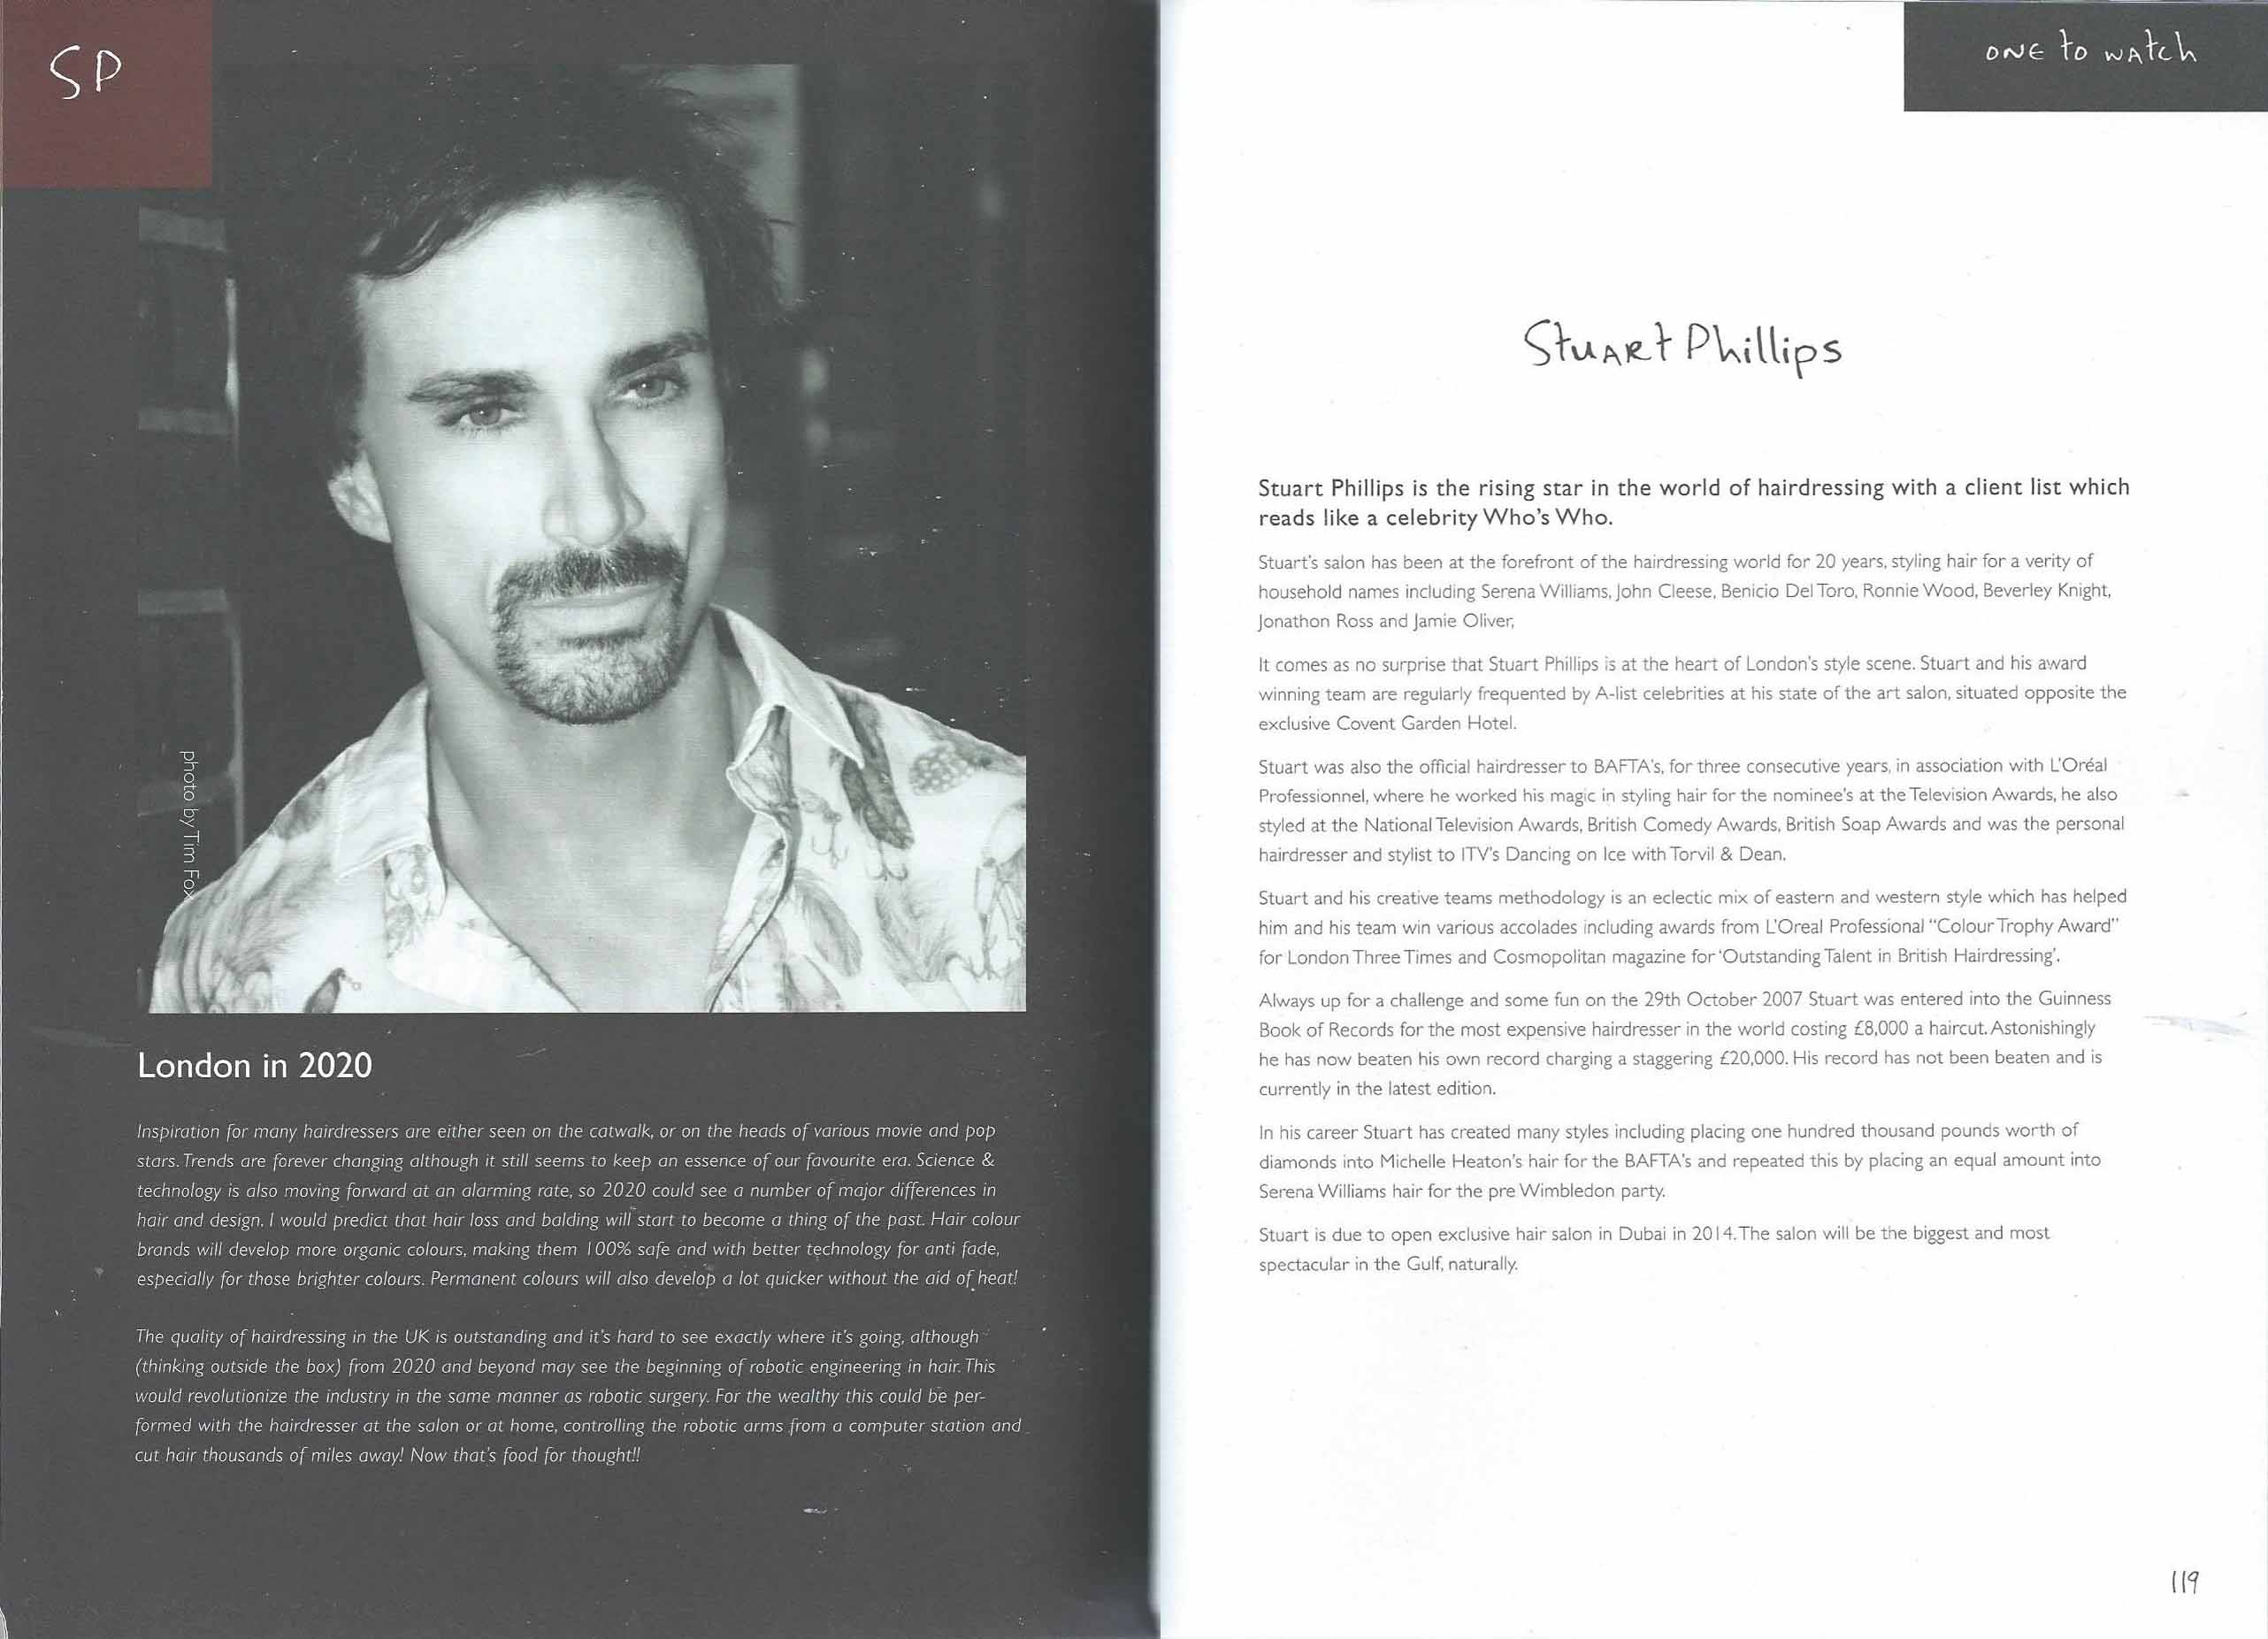 Stuart Phillips - London Key Lifestyle Influencers, the fifty - The New Book